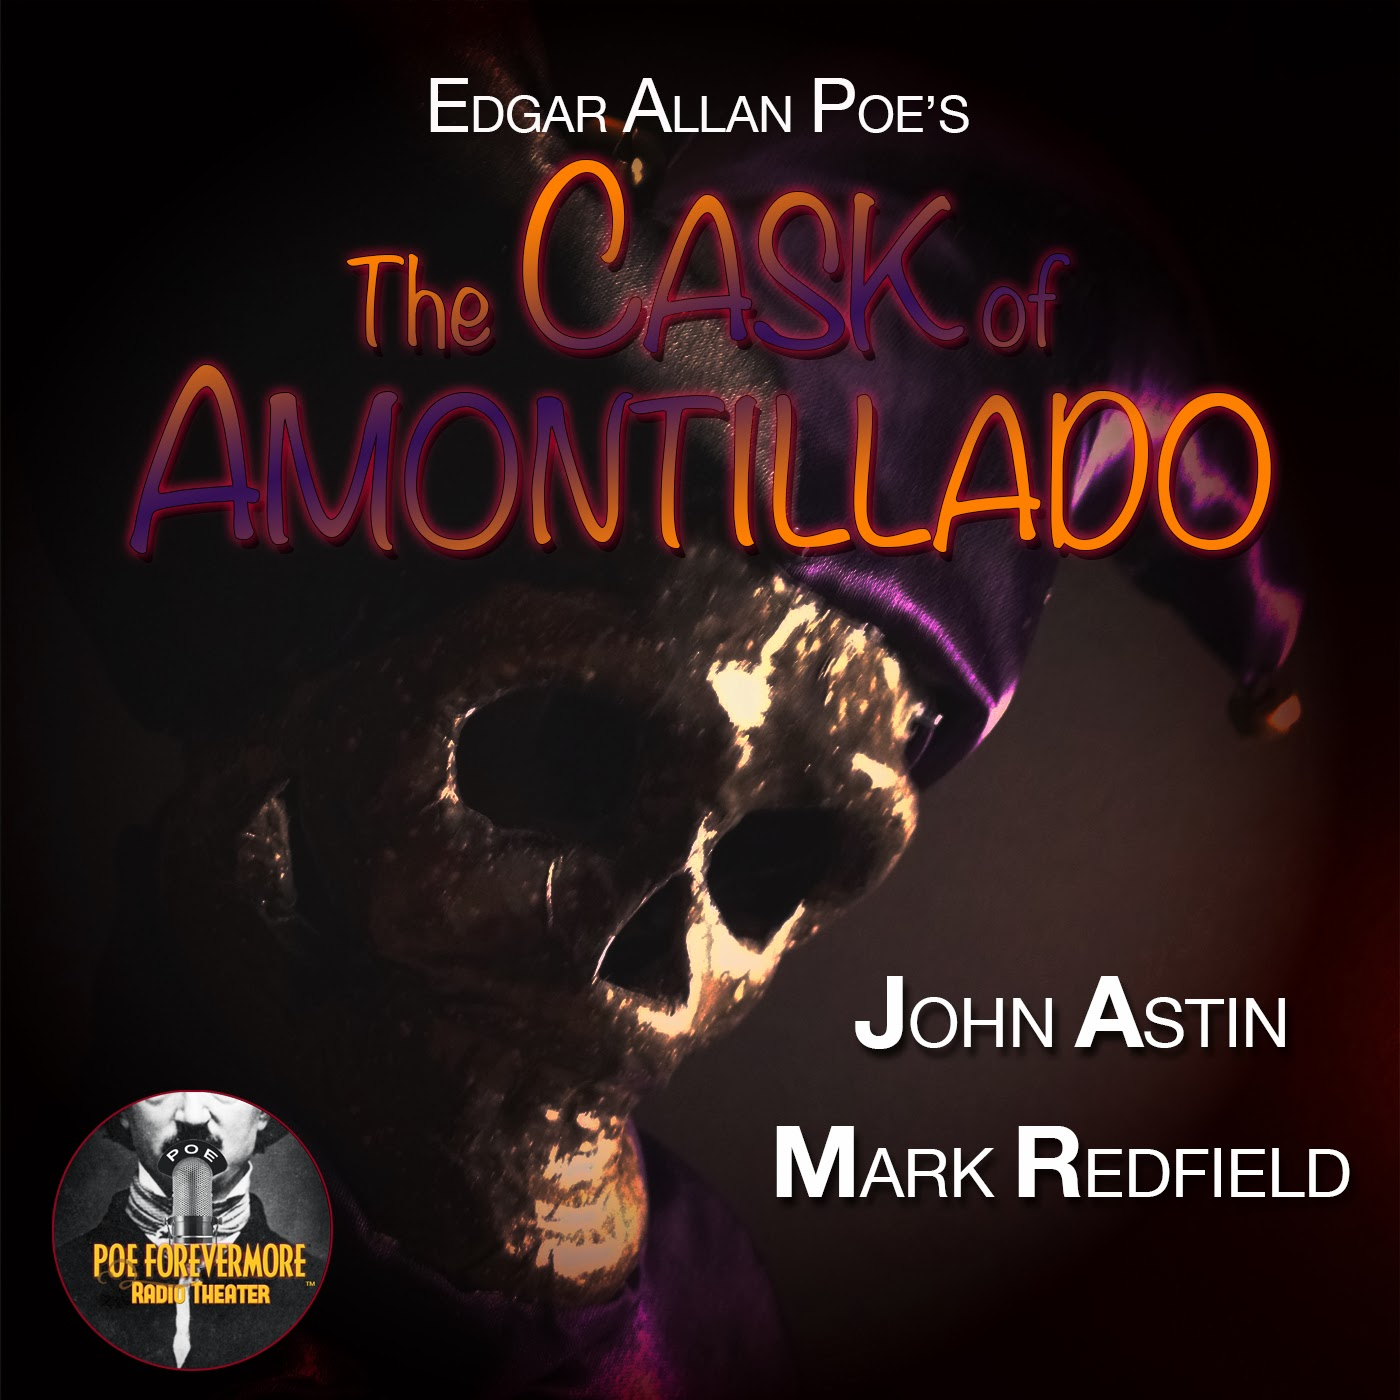 AUGUST'S AUDIO PLAY: THE CASK OF AMONTILLADO